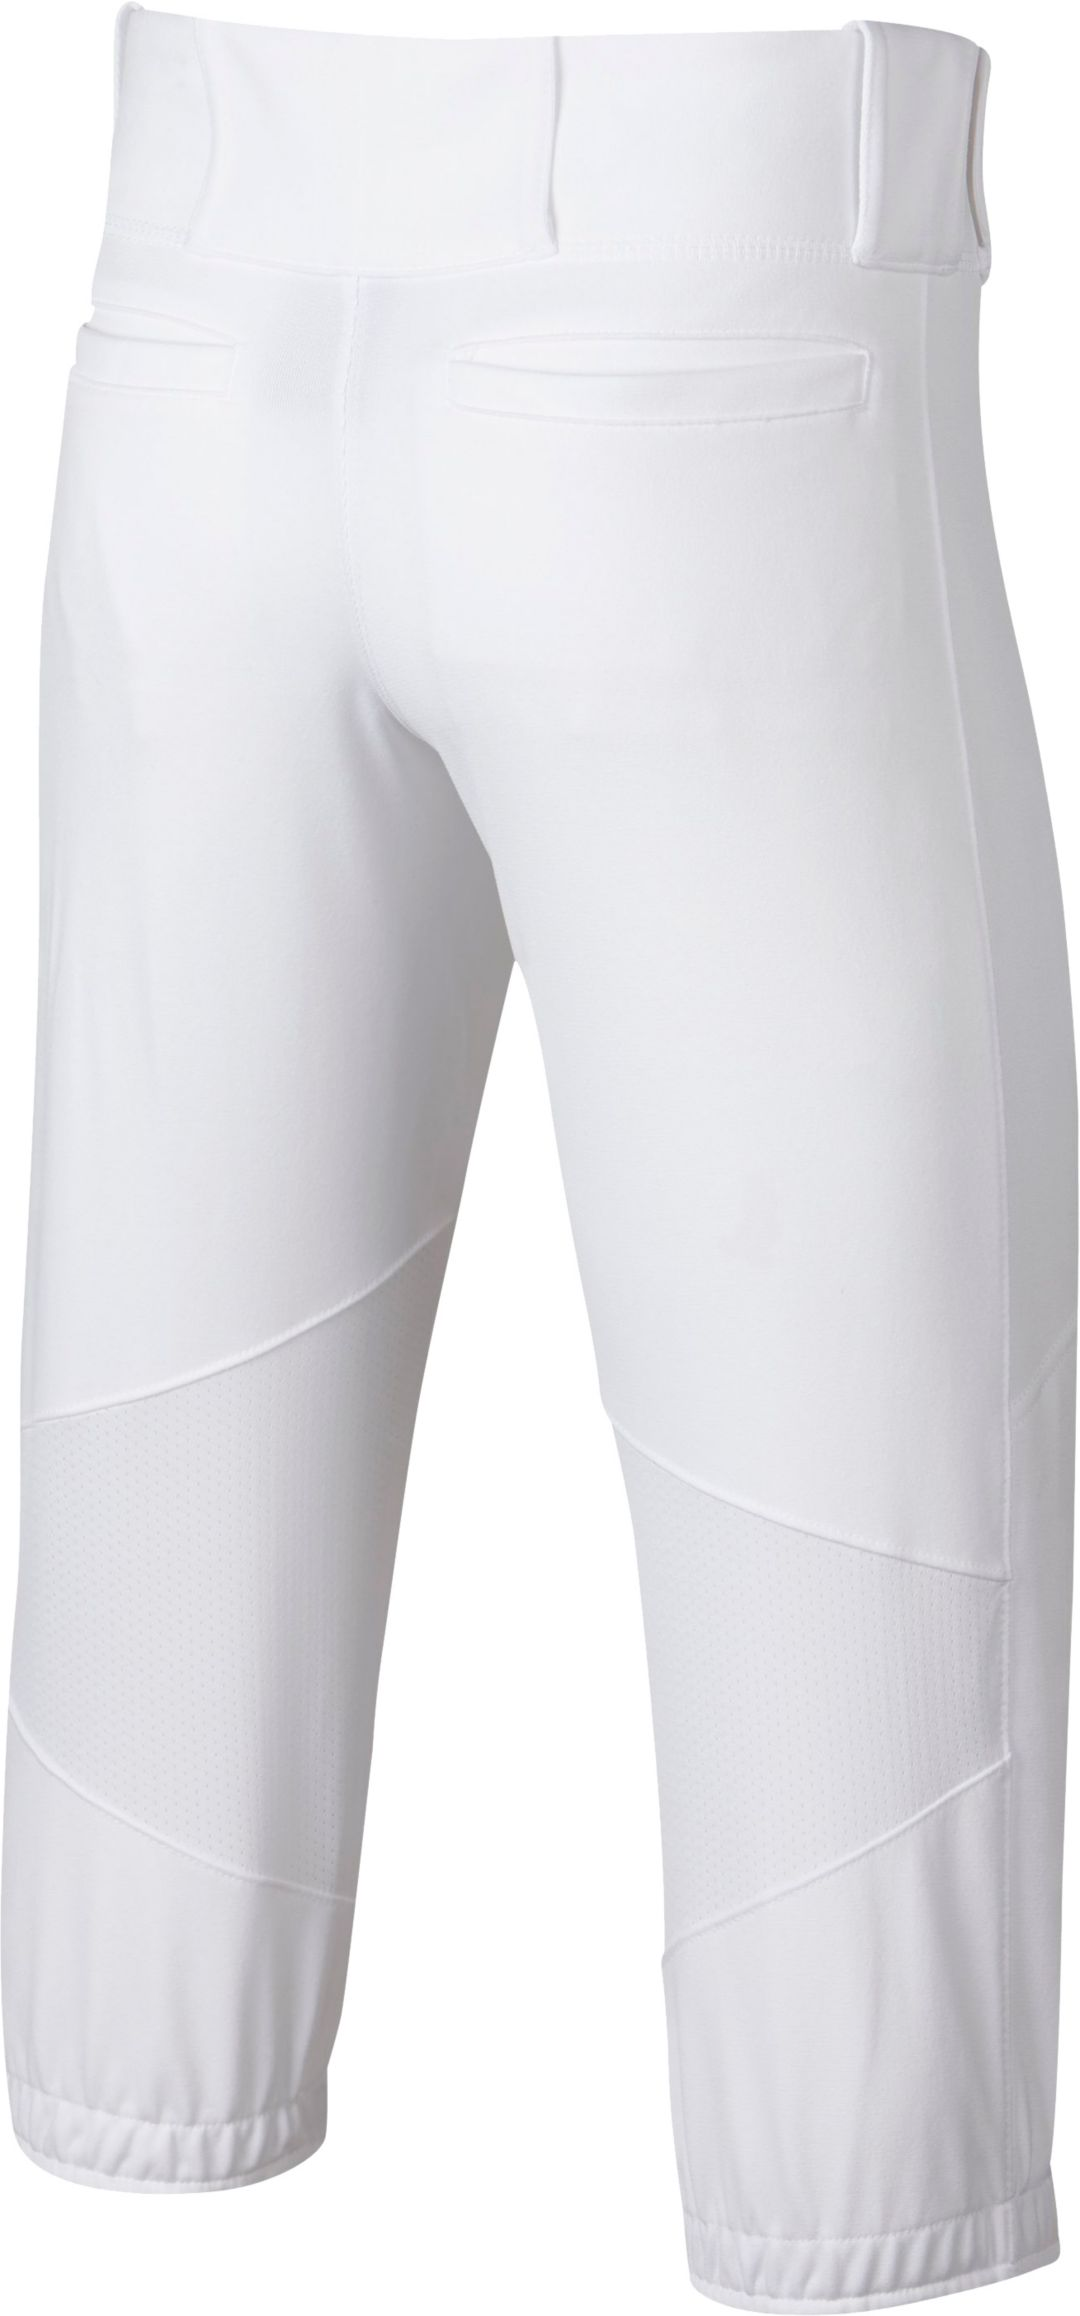 timeless design price remains stable fast color Nike Boys' Pro Vapor High Baseball Pants